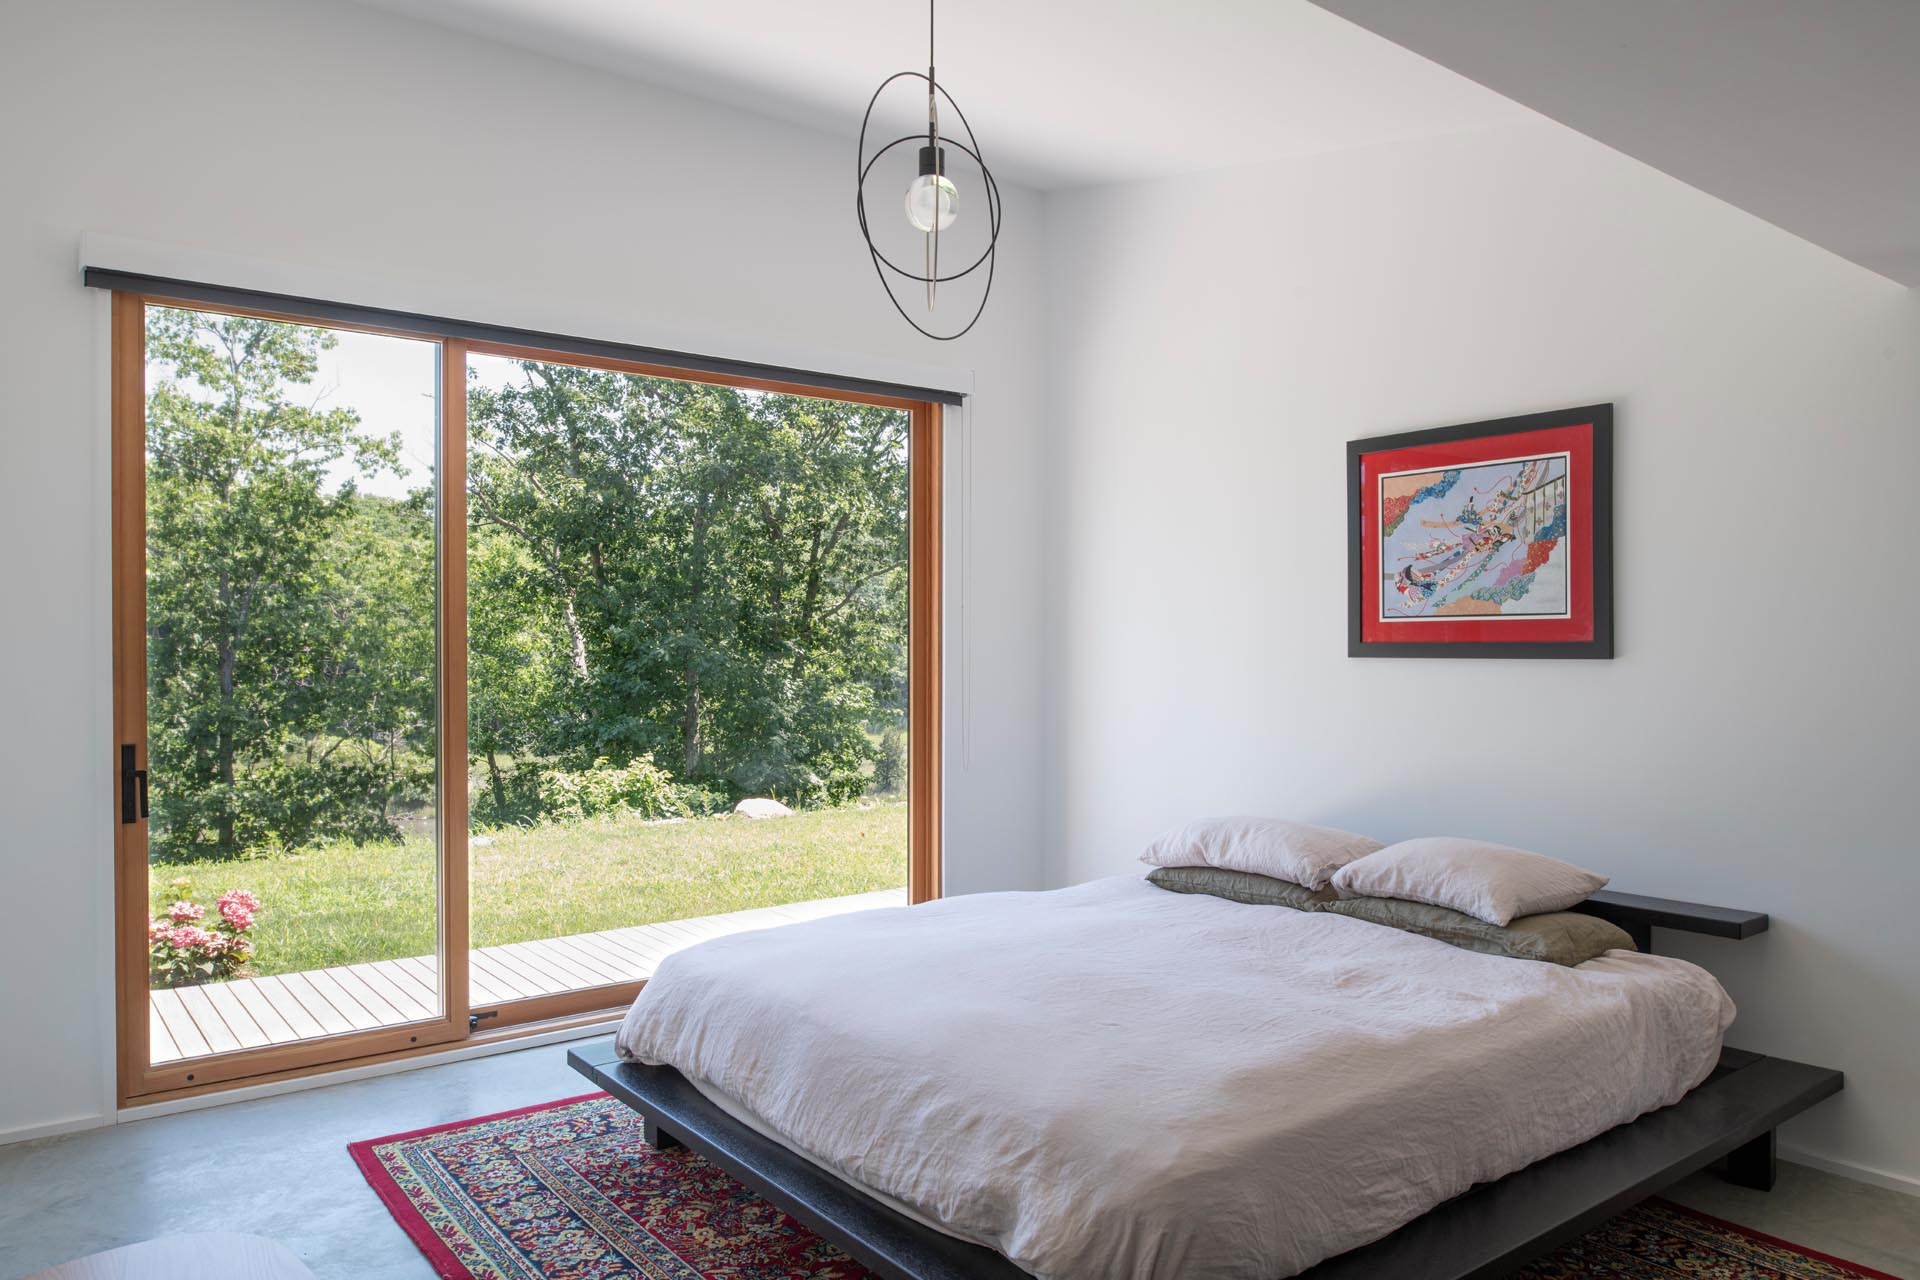 A minimalist bedroom with white walls, modern furniture, and a large window that looks out onto the marshland.